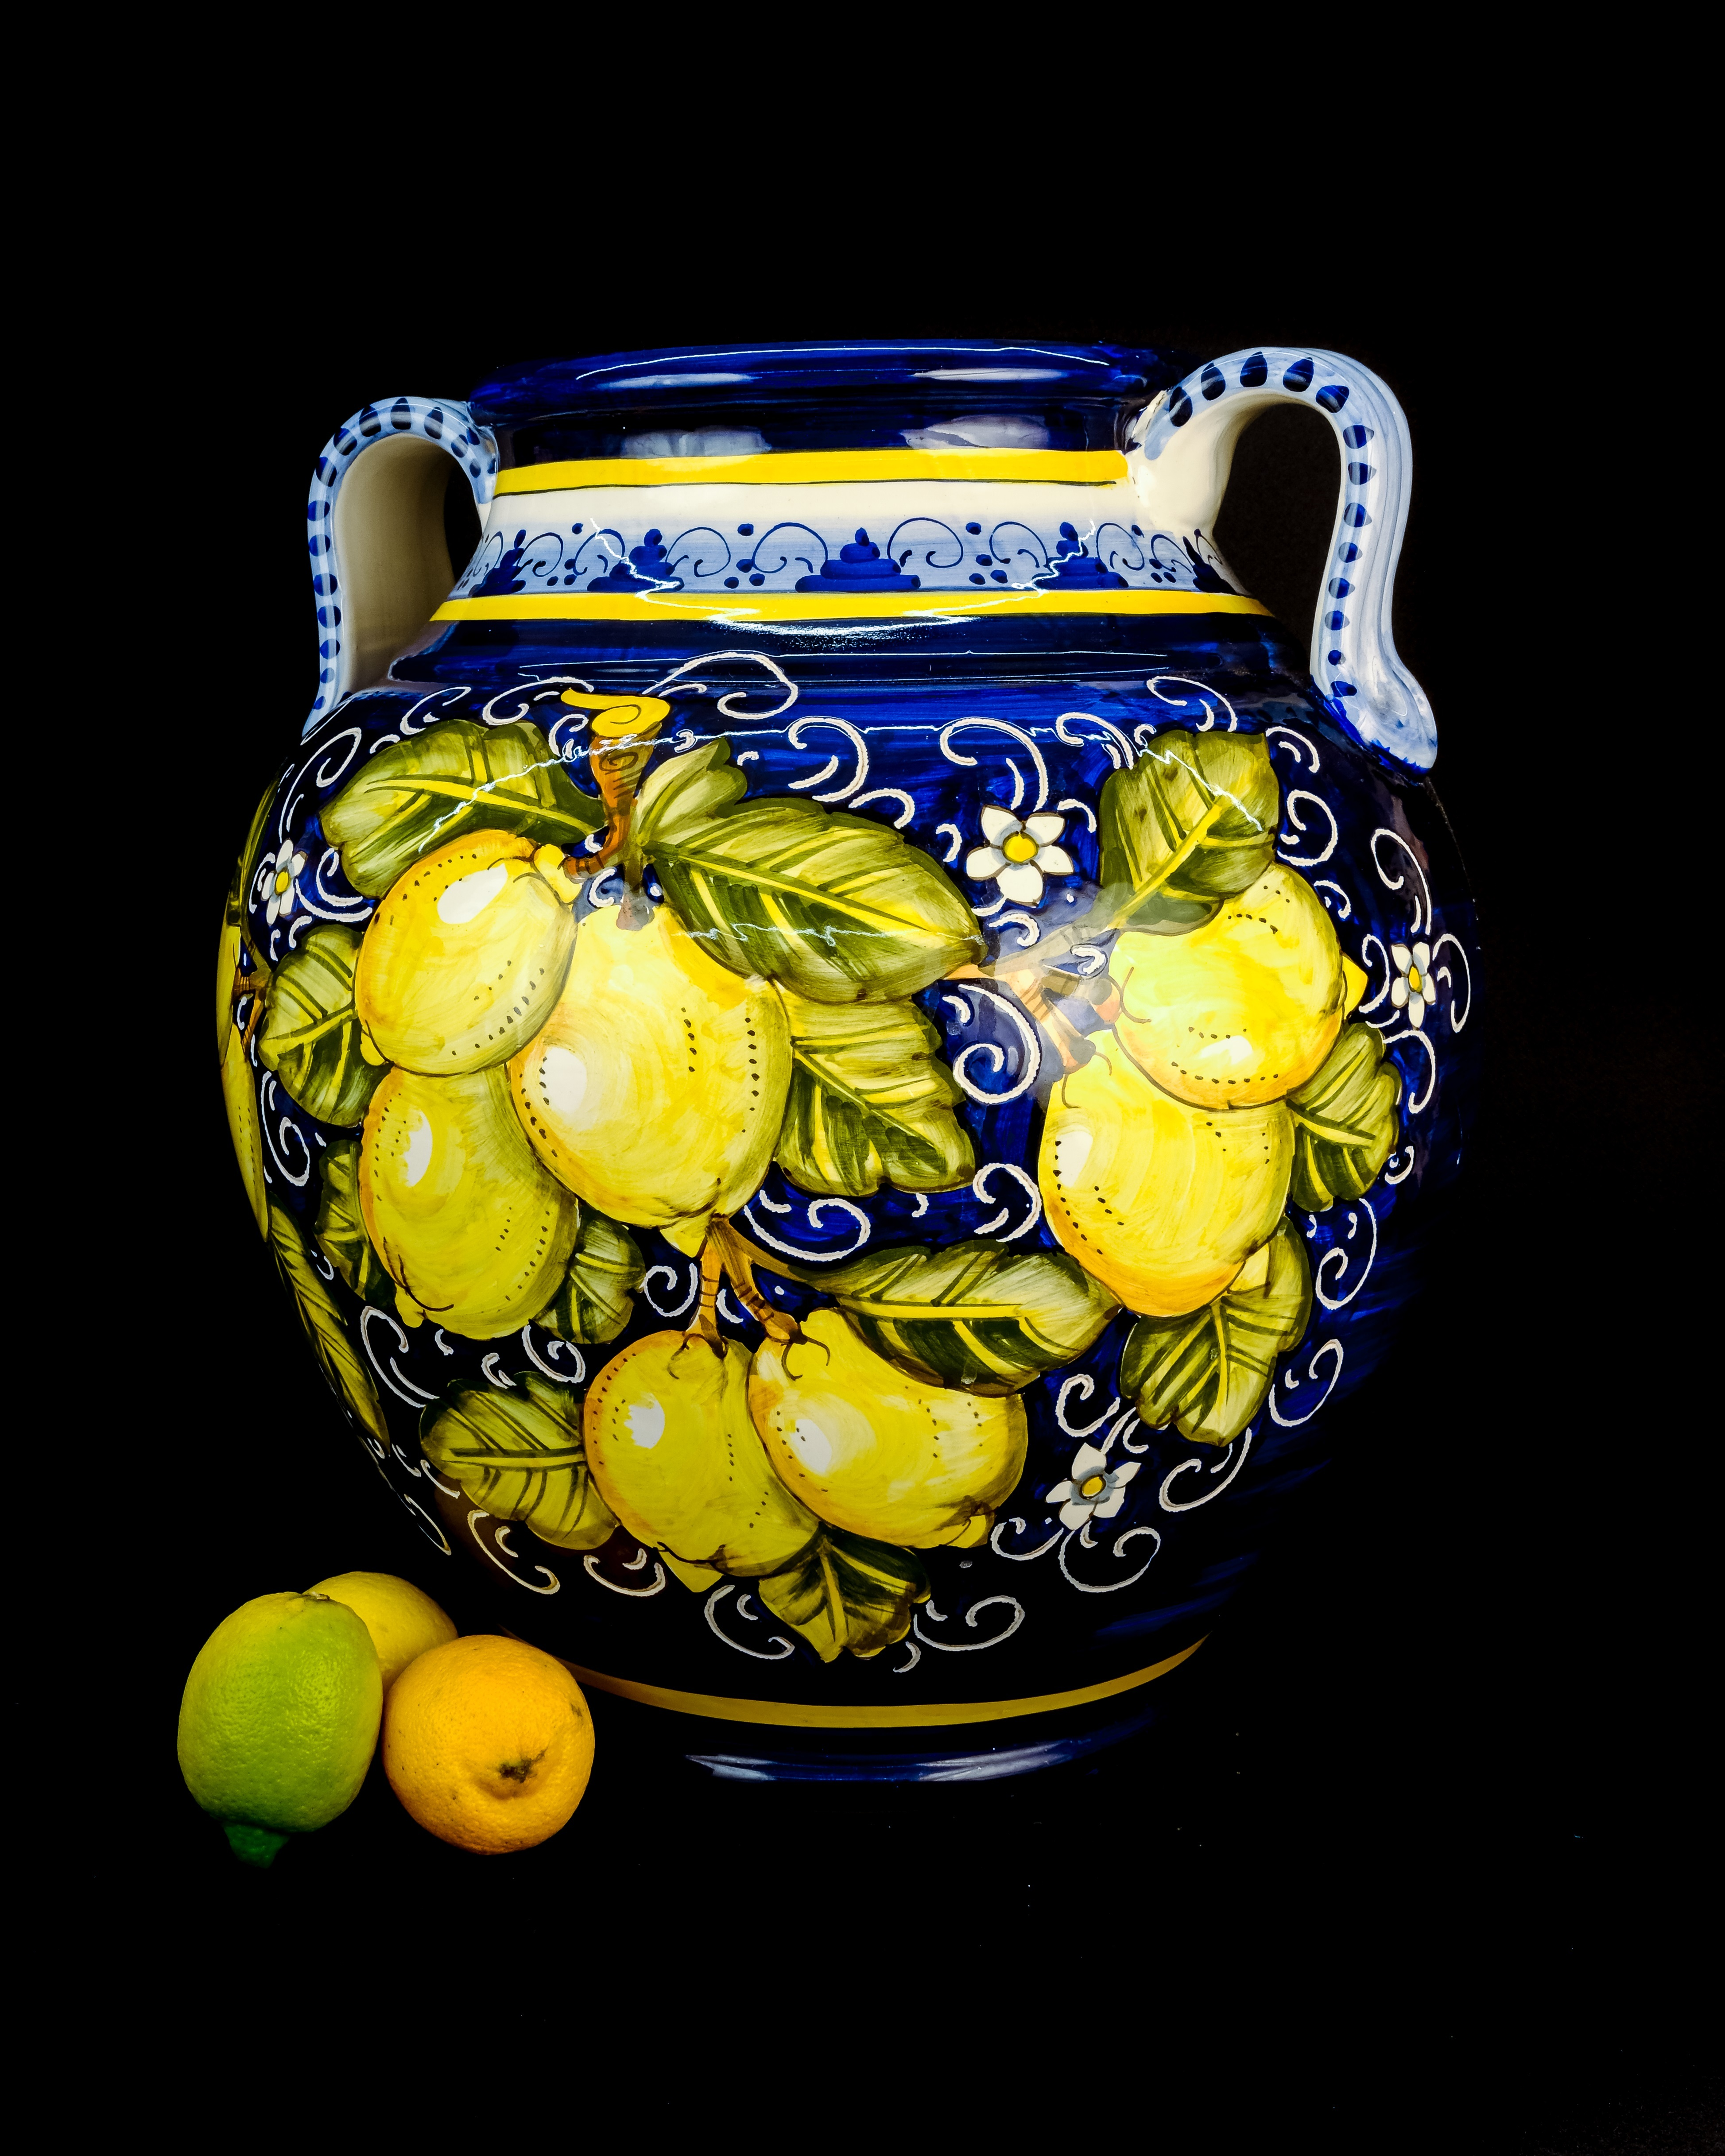 Lemon - <p>Can you smell the aroma?</p>